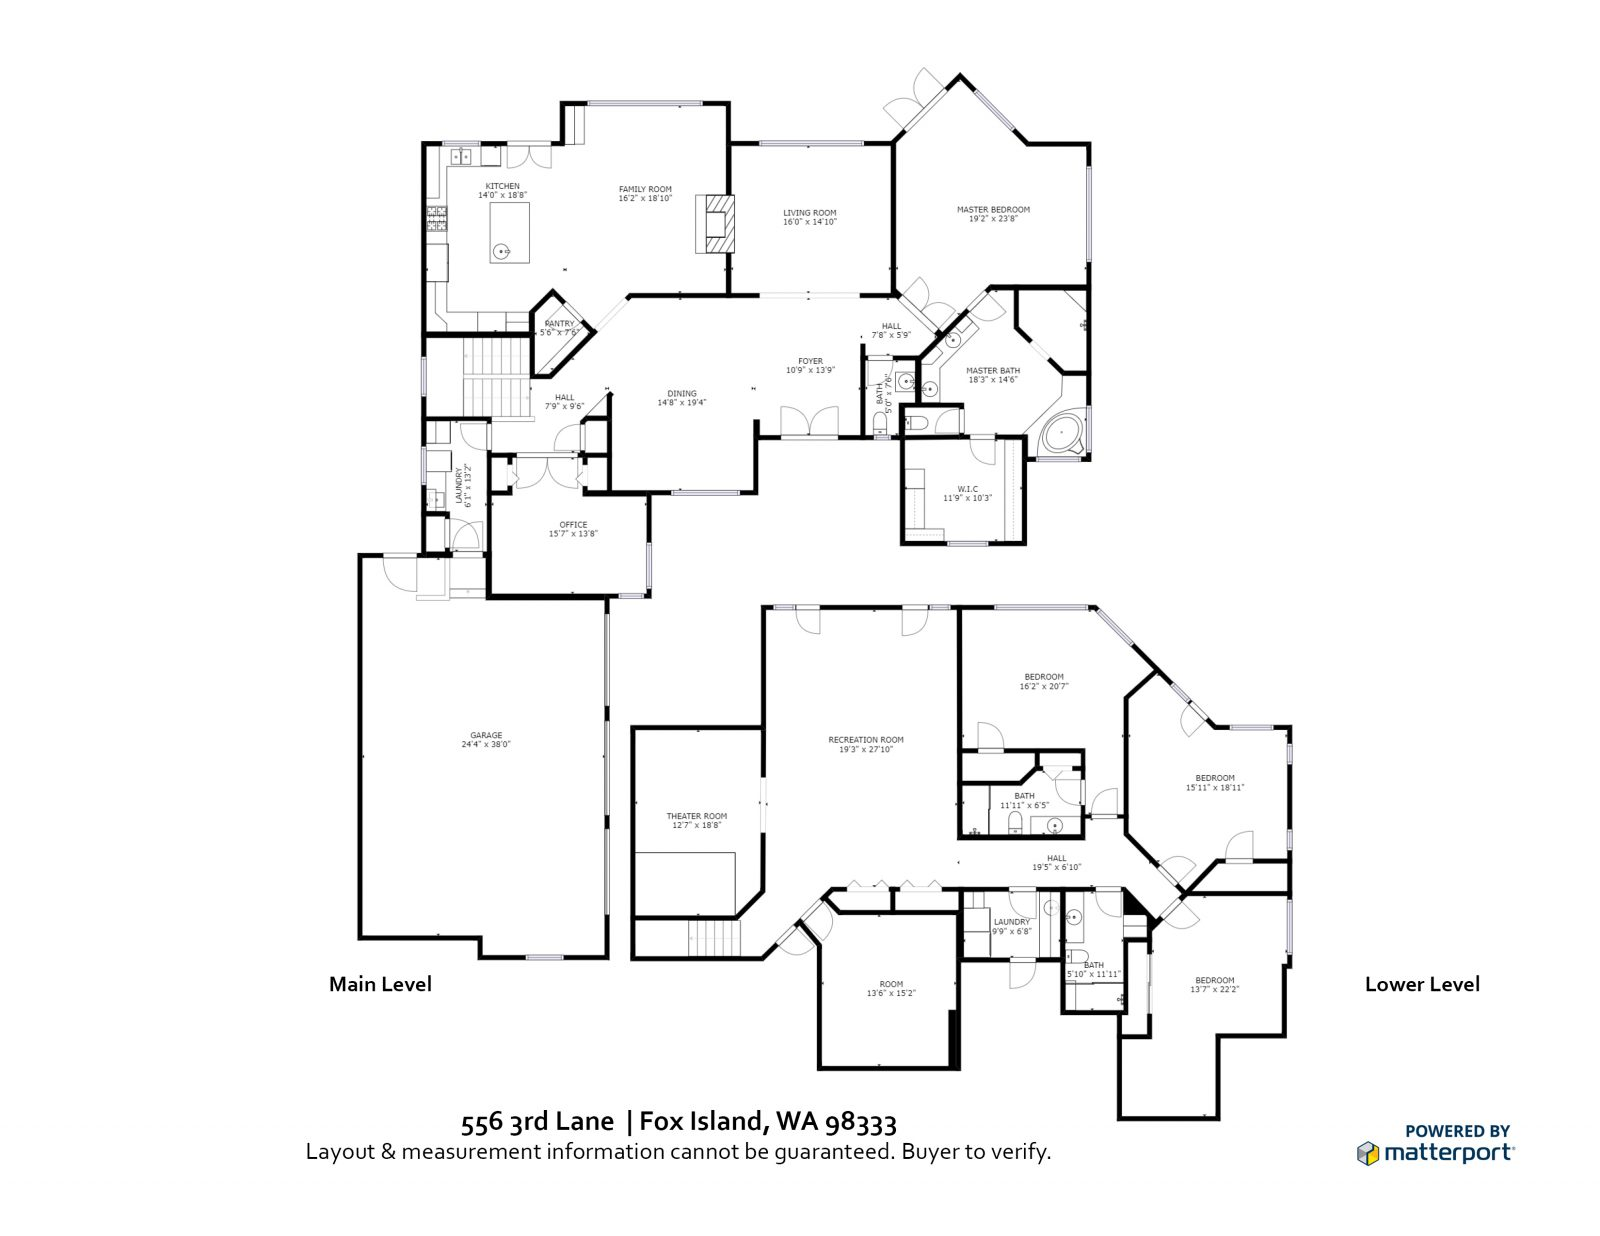 FLOOR PLAN: 556 3rd Lane, Fox Island WA 98333